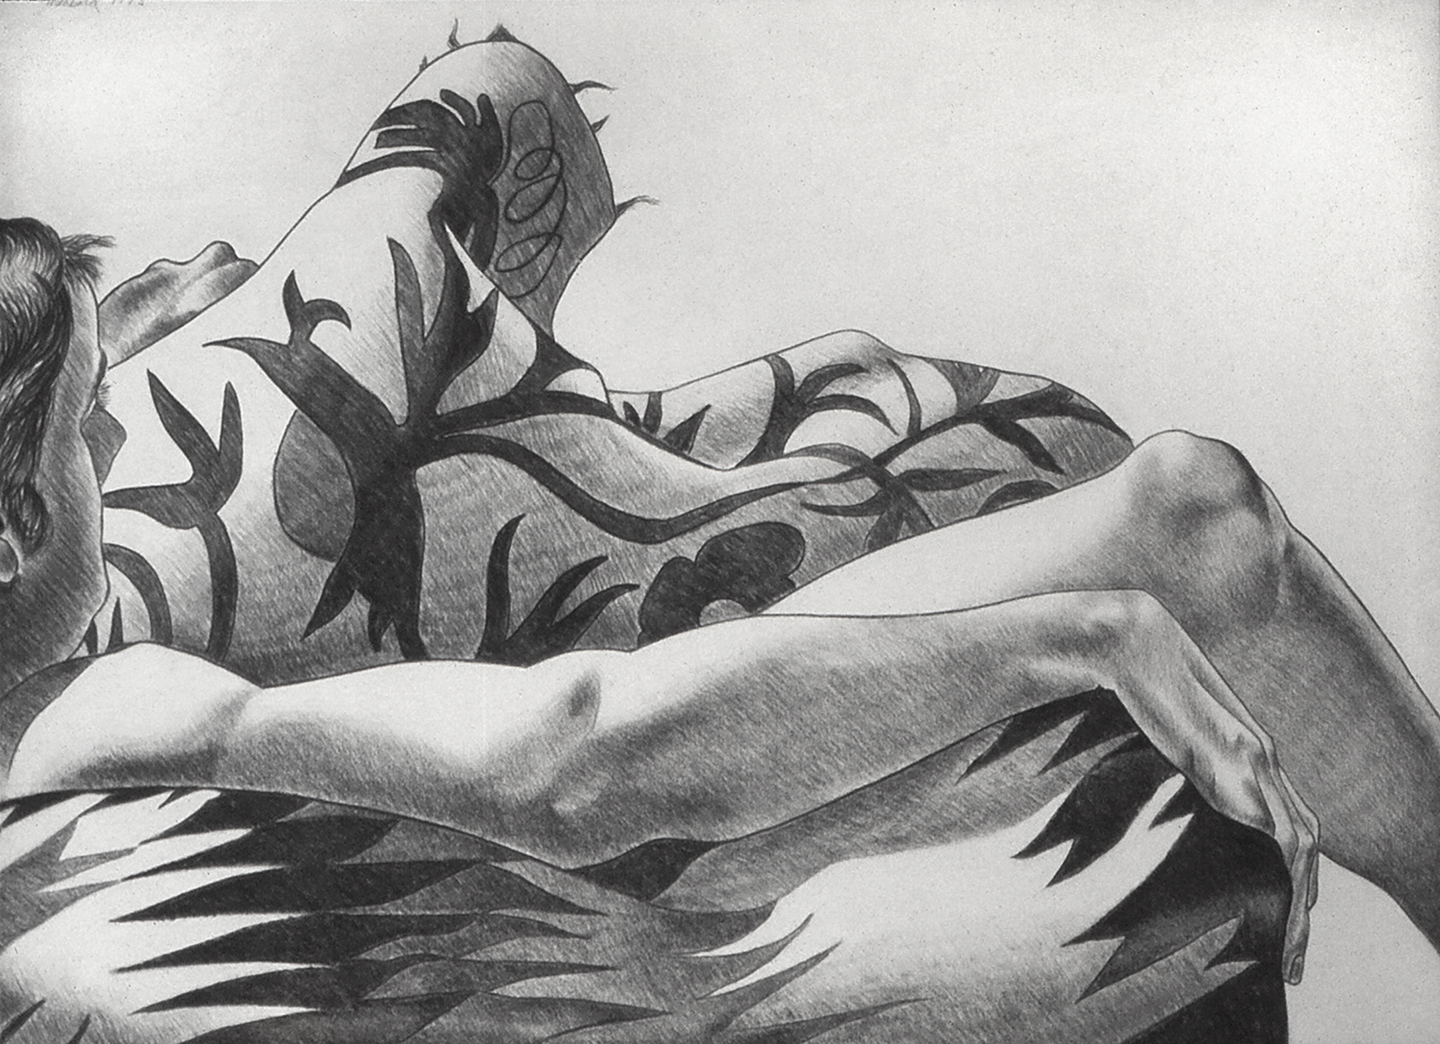 Fragments of a Male Nude, 1975  Charcoal on Rives